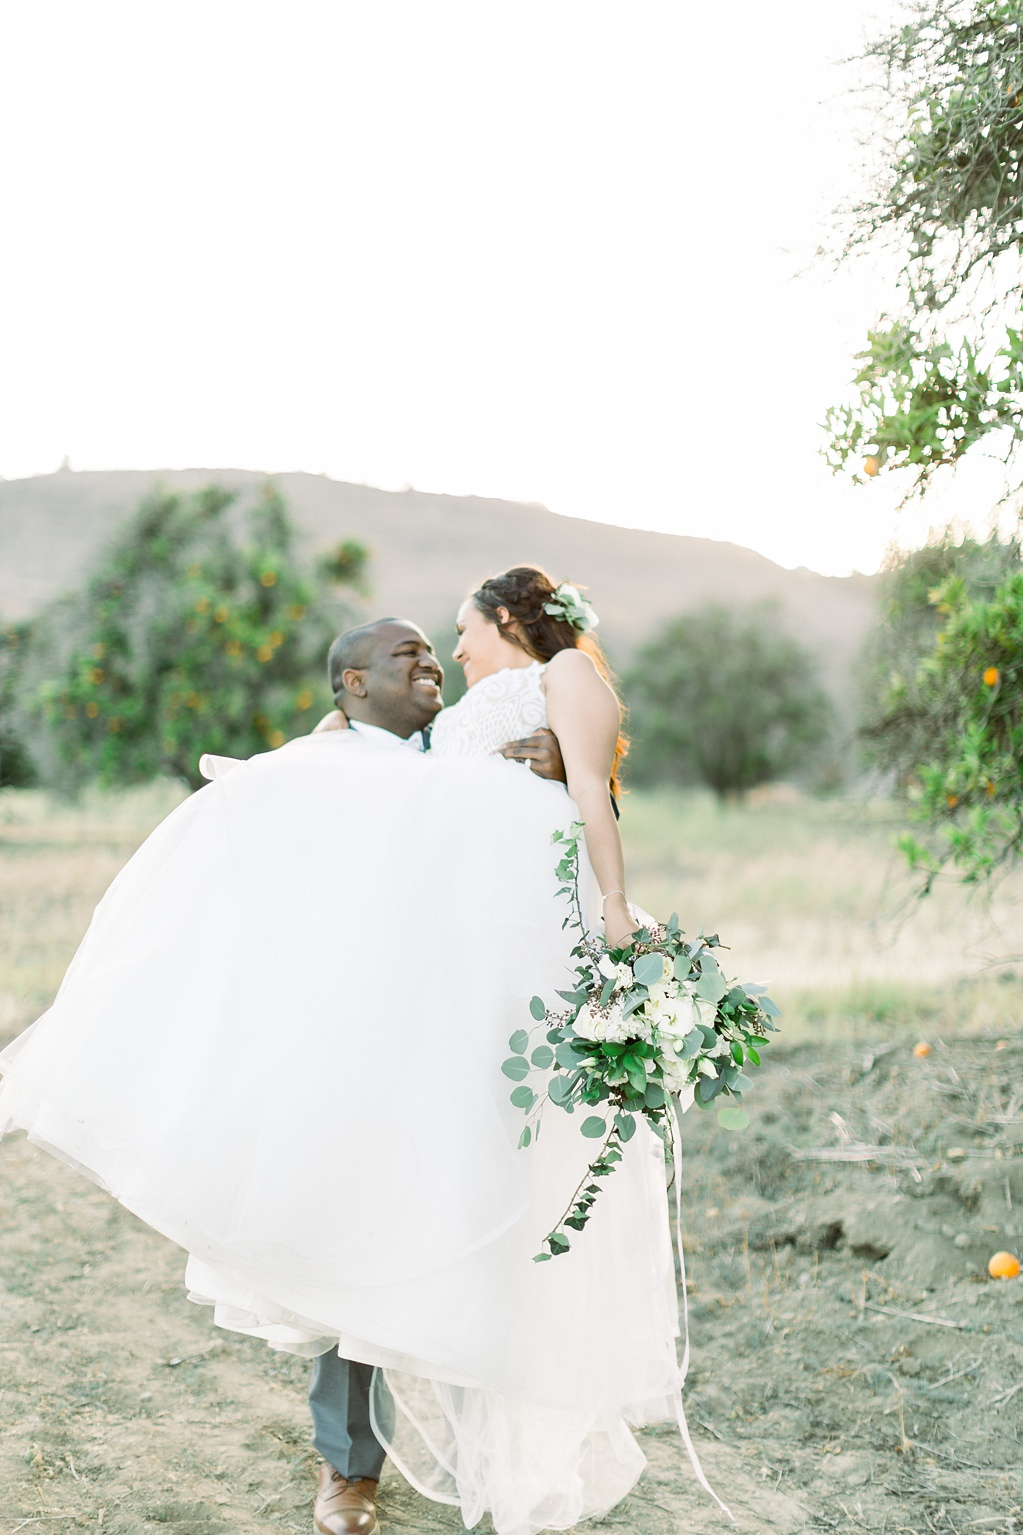 An Organic Floral Inspired Summer Wedding in the open fields of Hamilton Oaks, San Juan Capistrano by Wedding Photographer Madison Ellis (39)